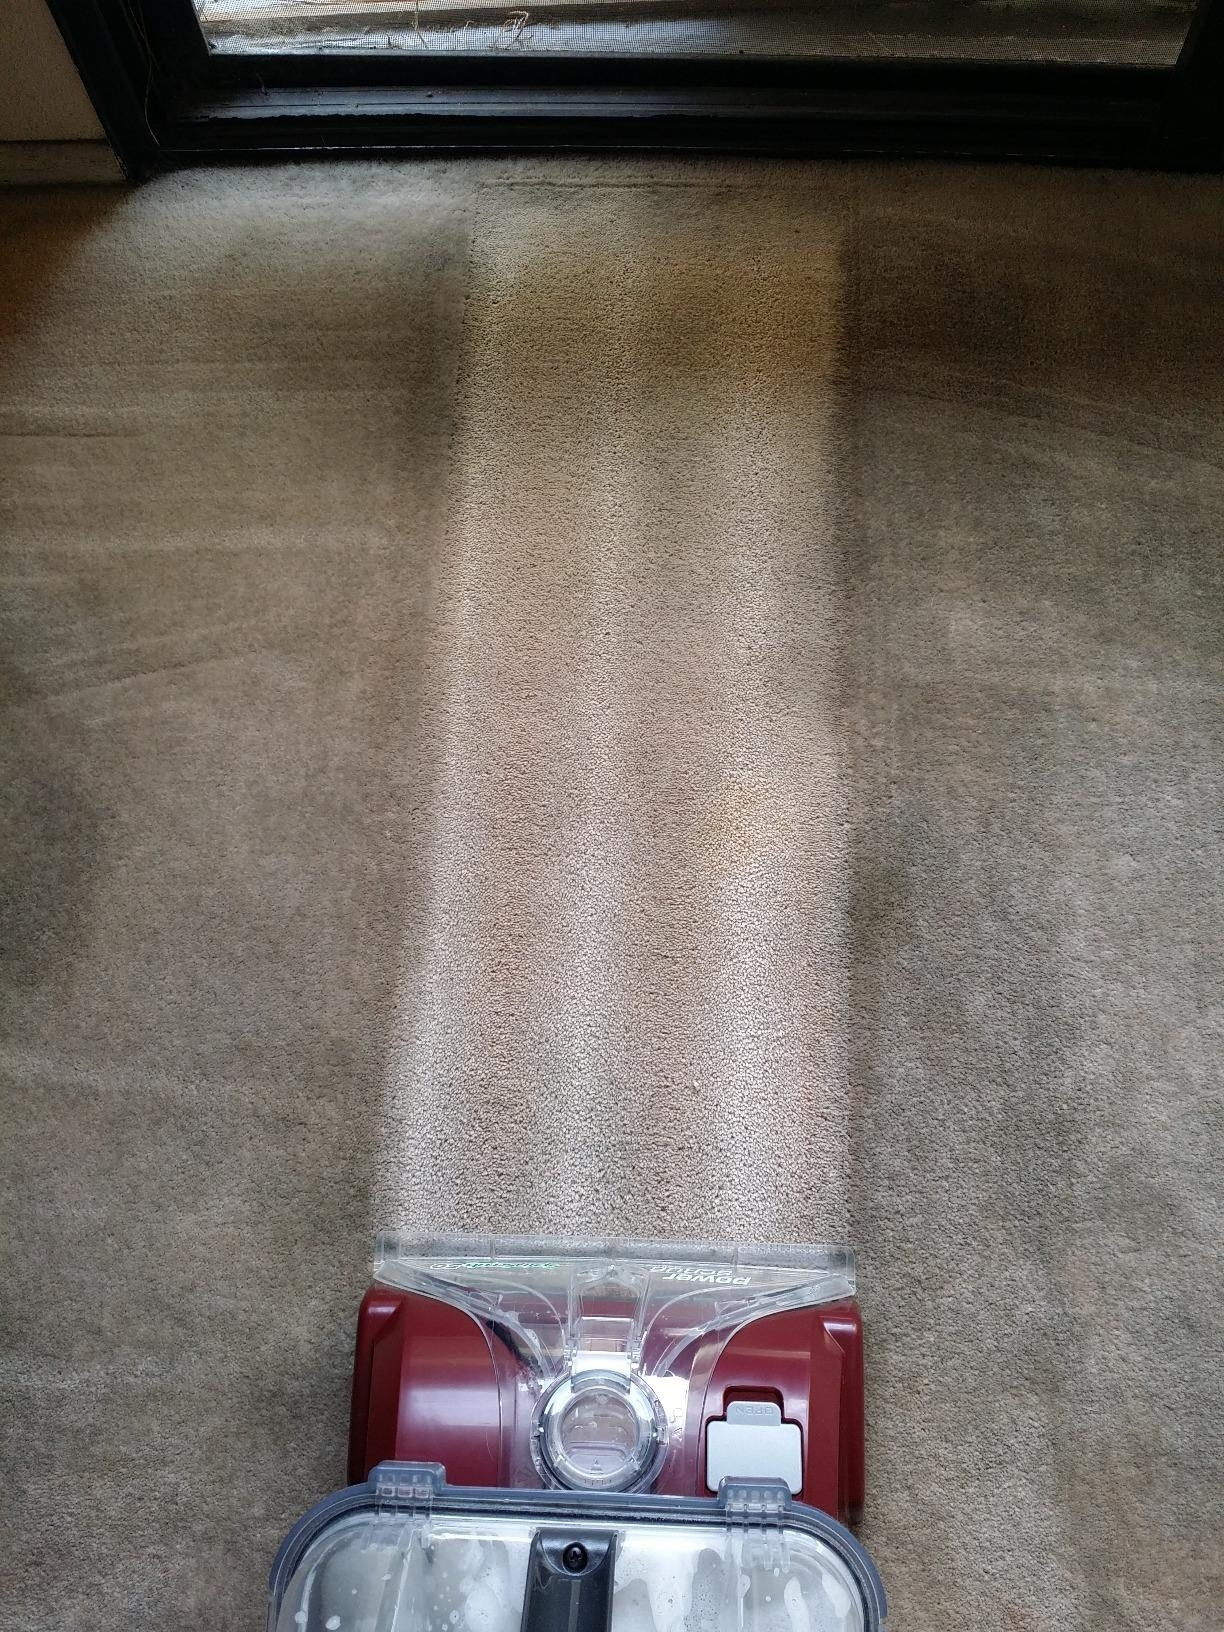 carpet cleaner cleaning a light stripe through a dirty brown carpet